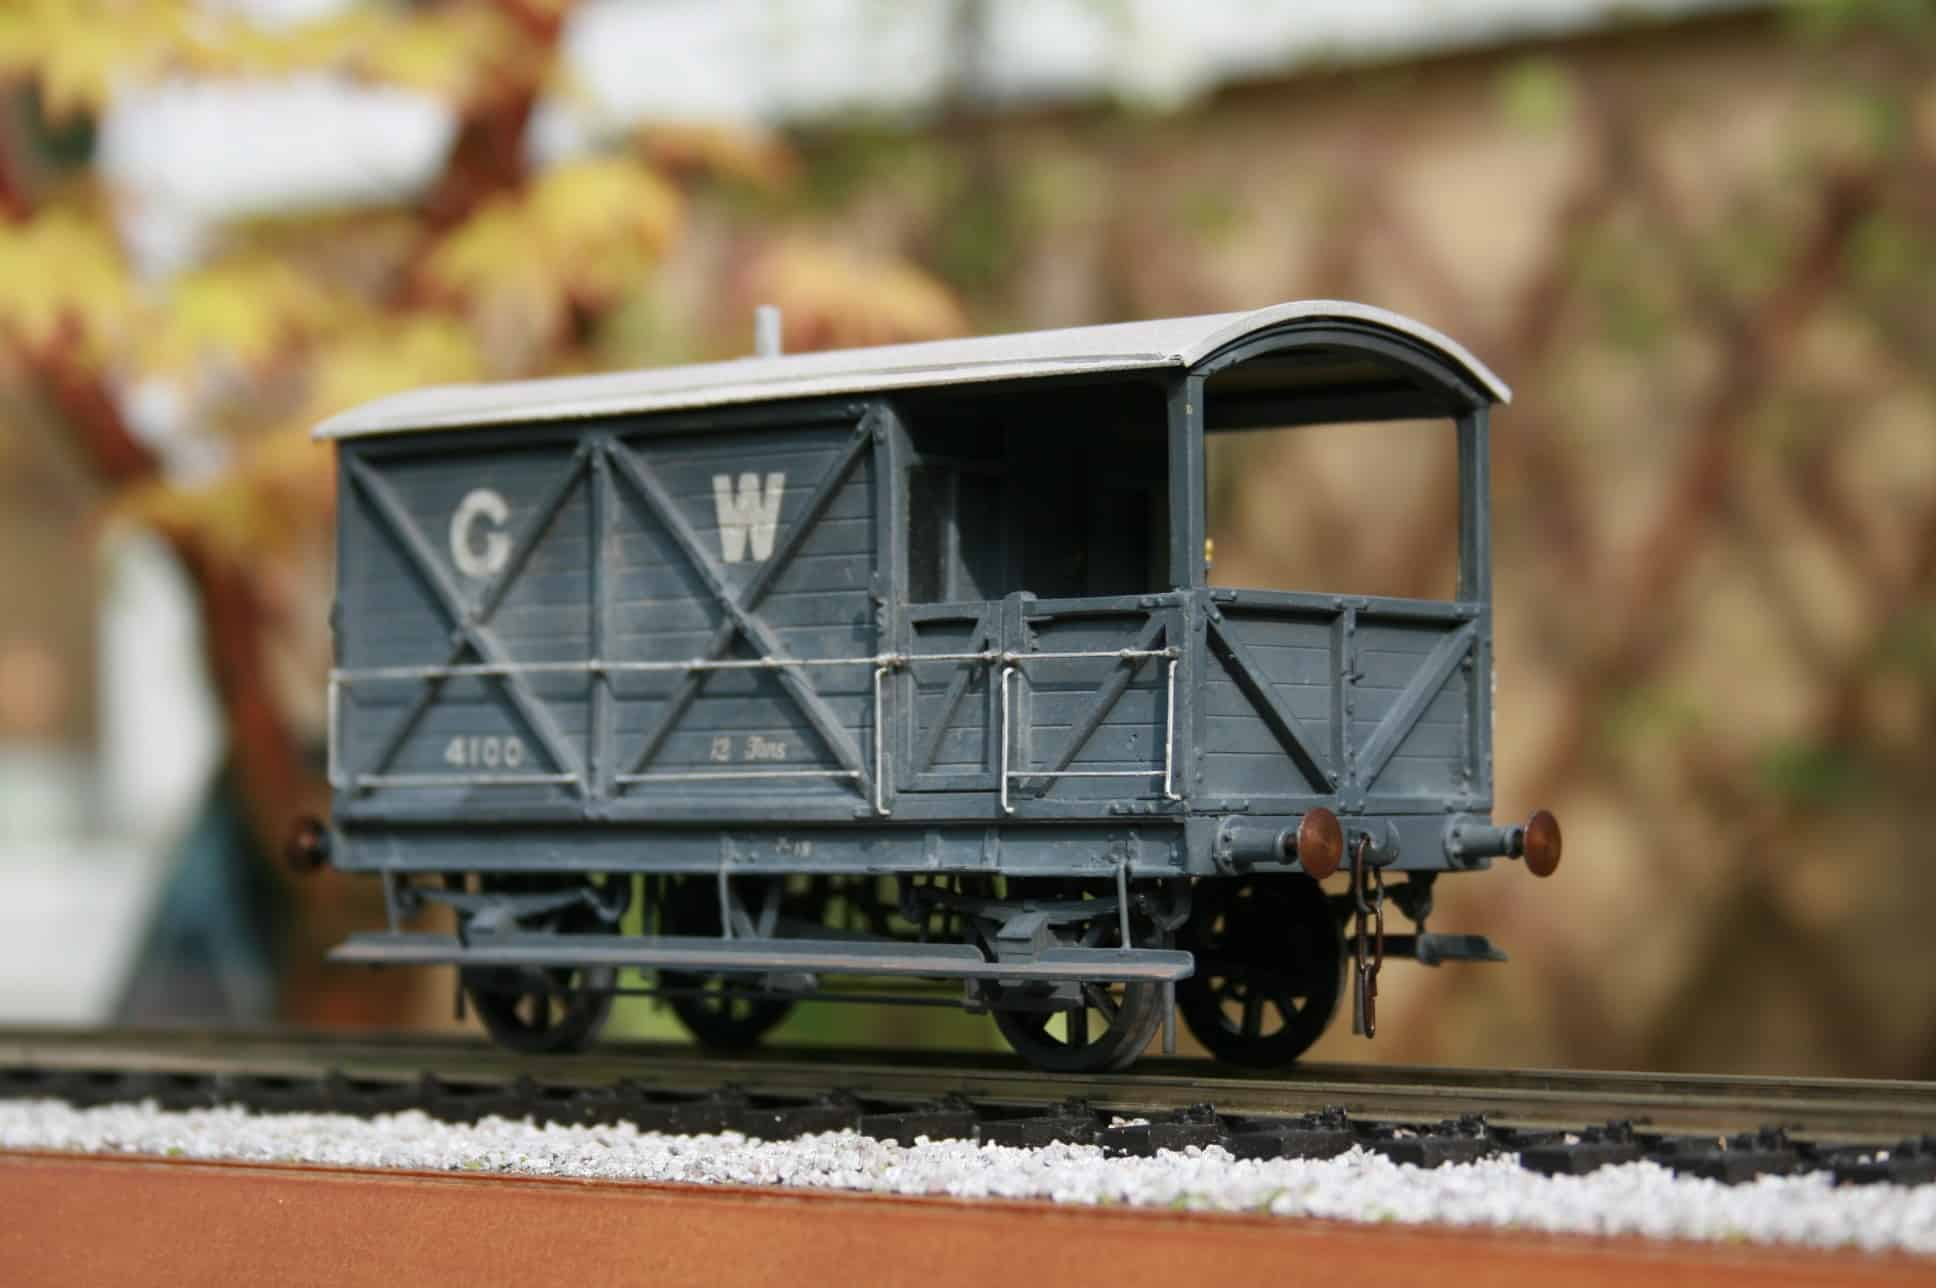 GWR 12 ton Brake Van to Lot osL253 r/n 4100